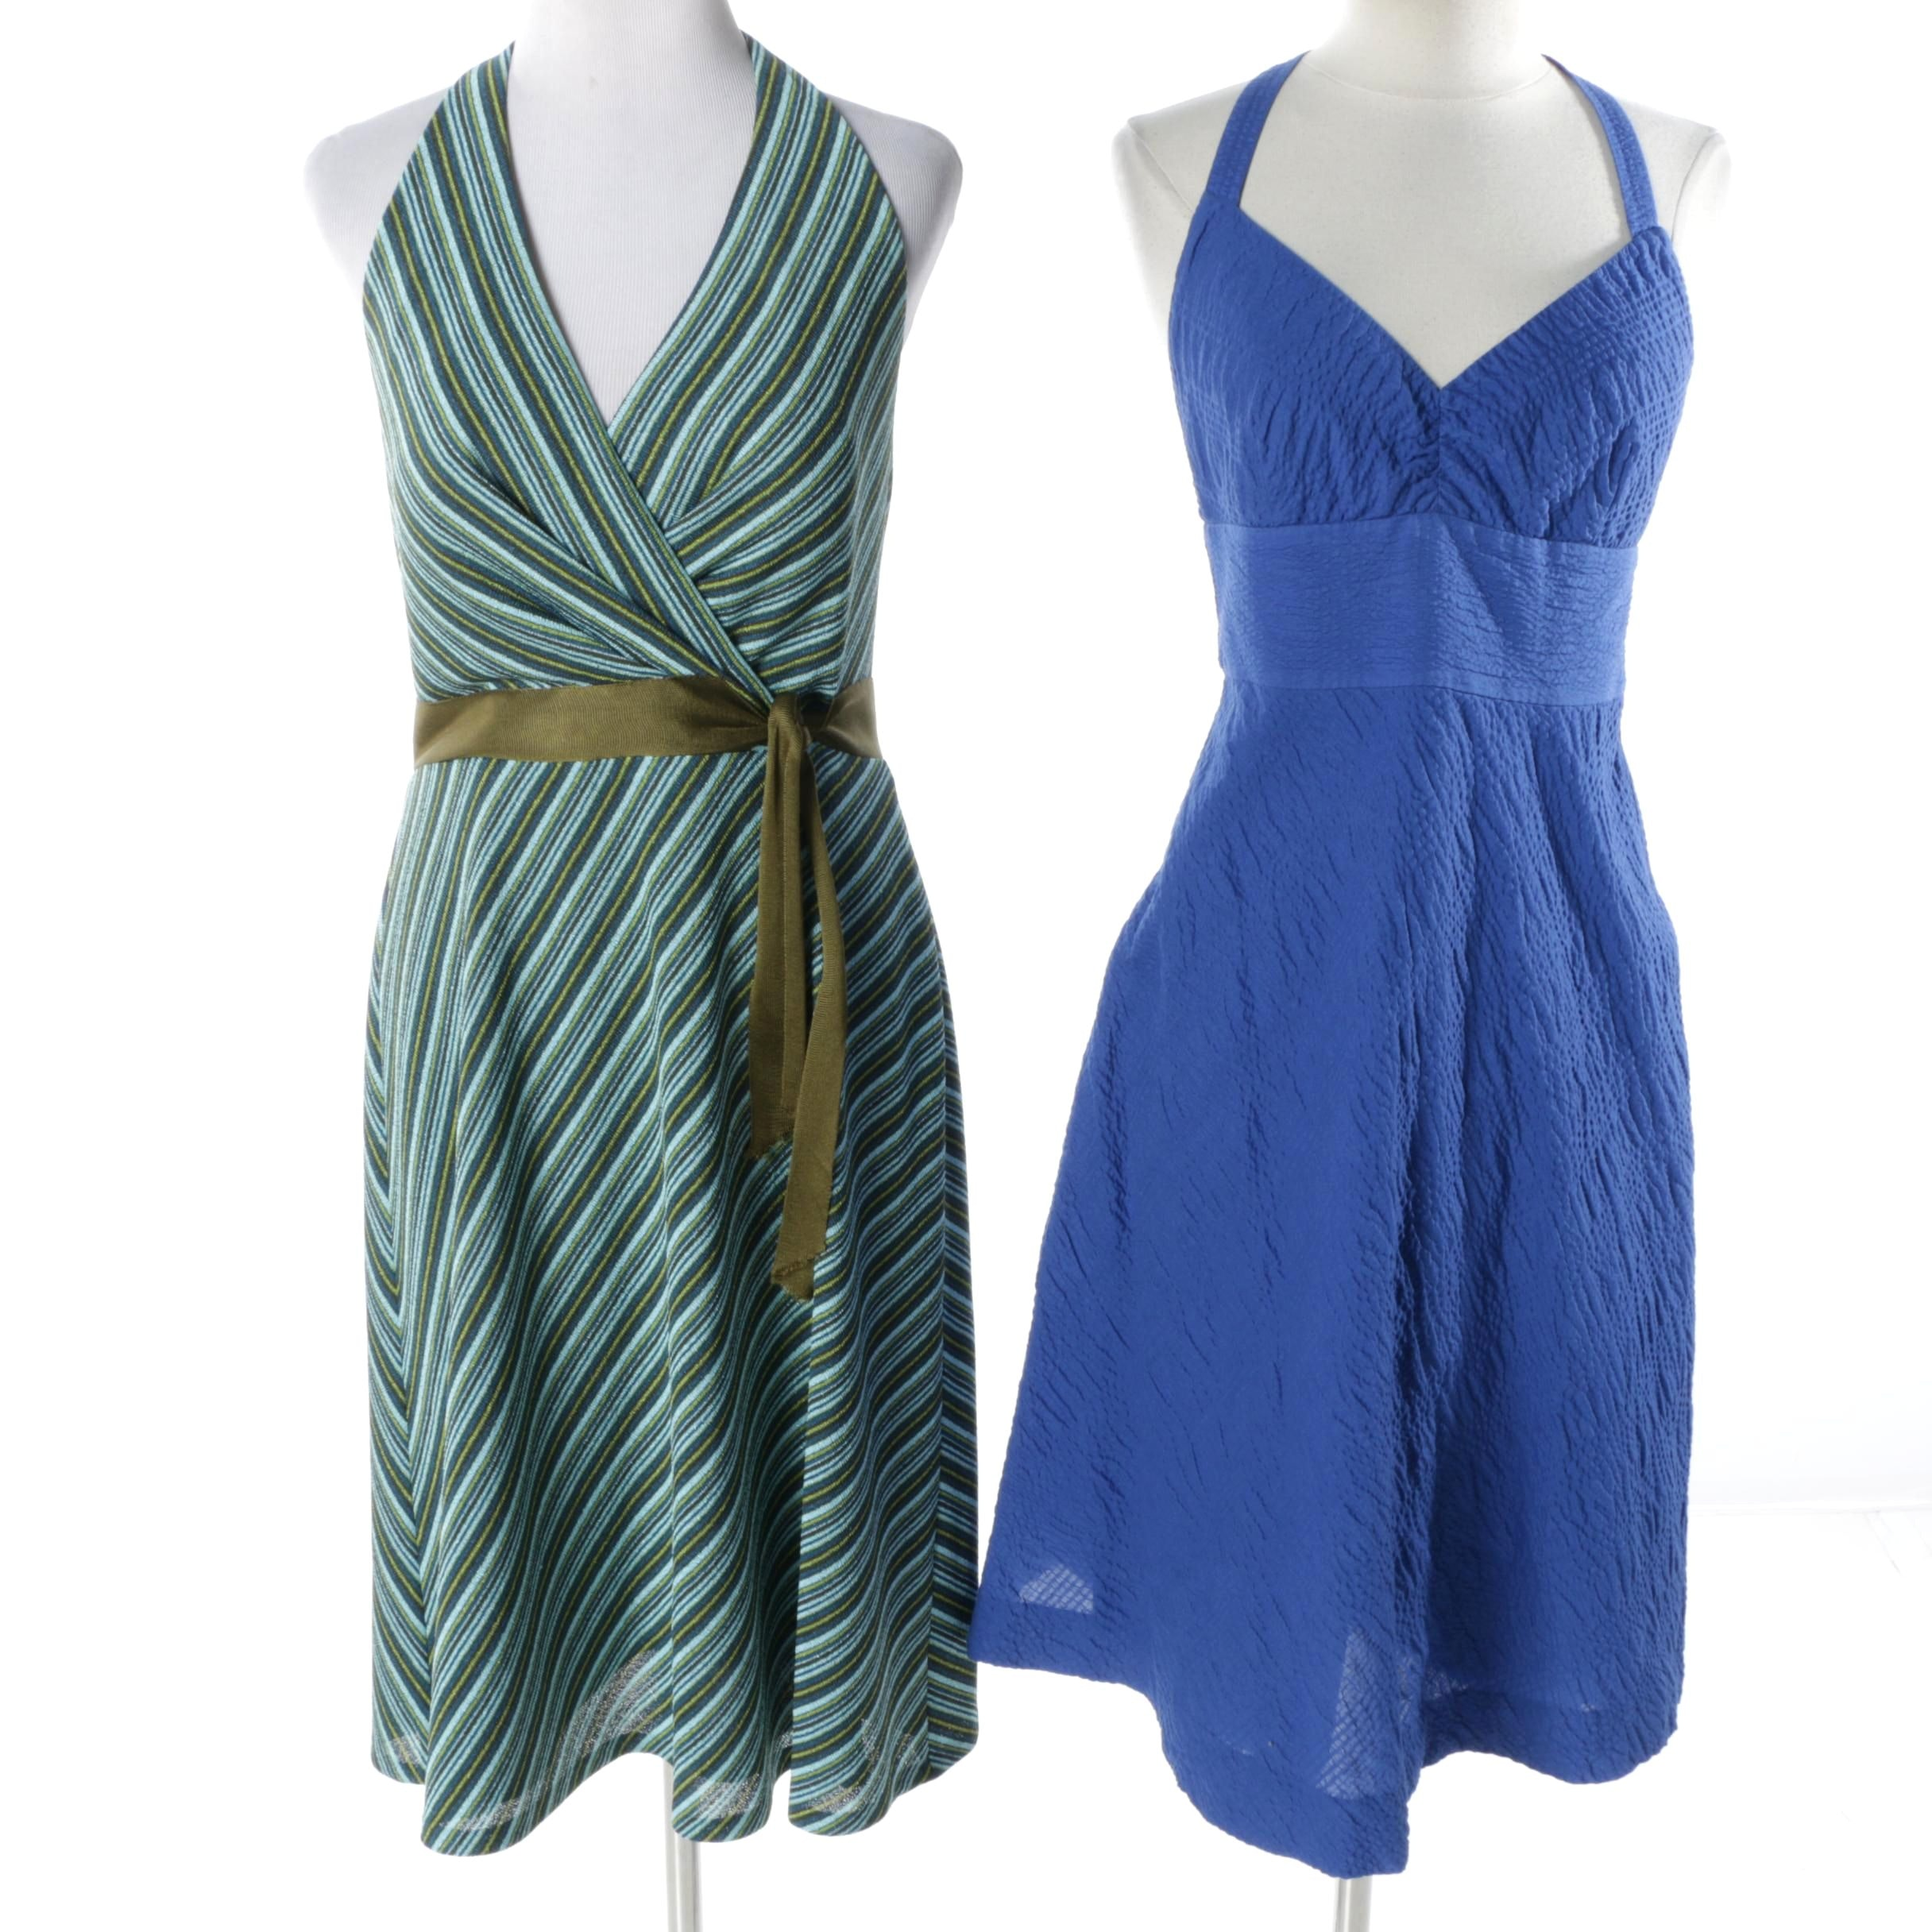 Women's Dresses Including J.Crew and Kay Unger New York